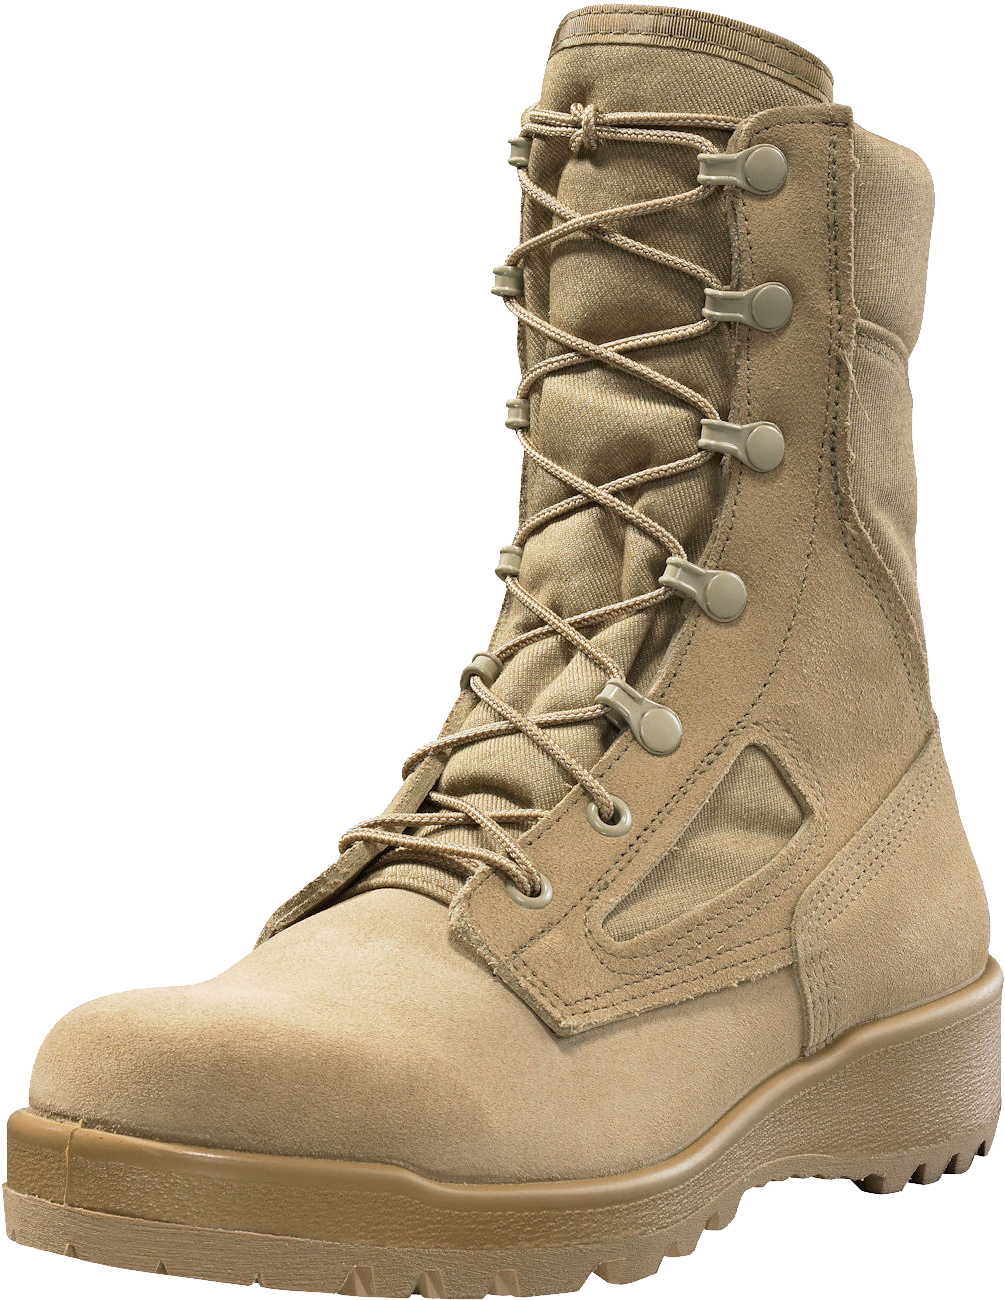 Timbs png nubuck. Boots images free download